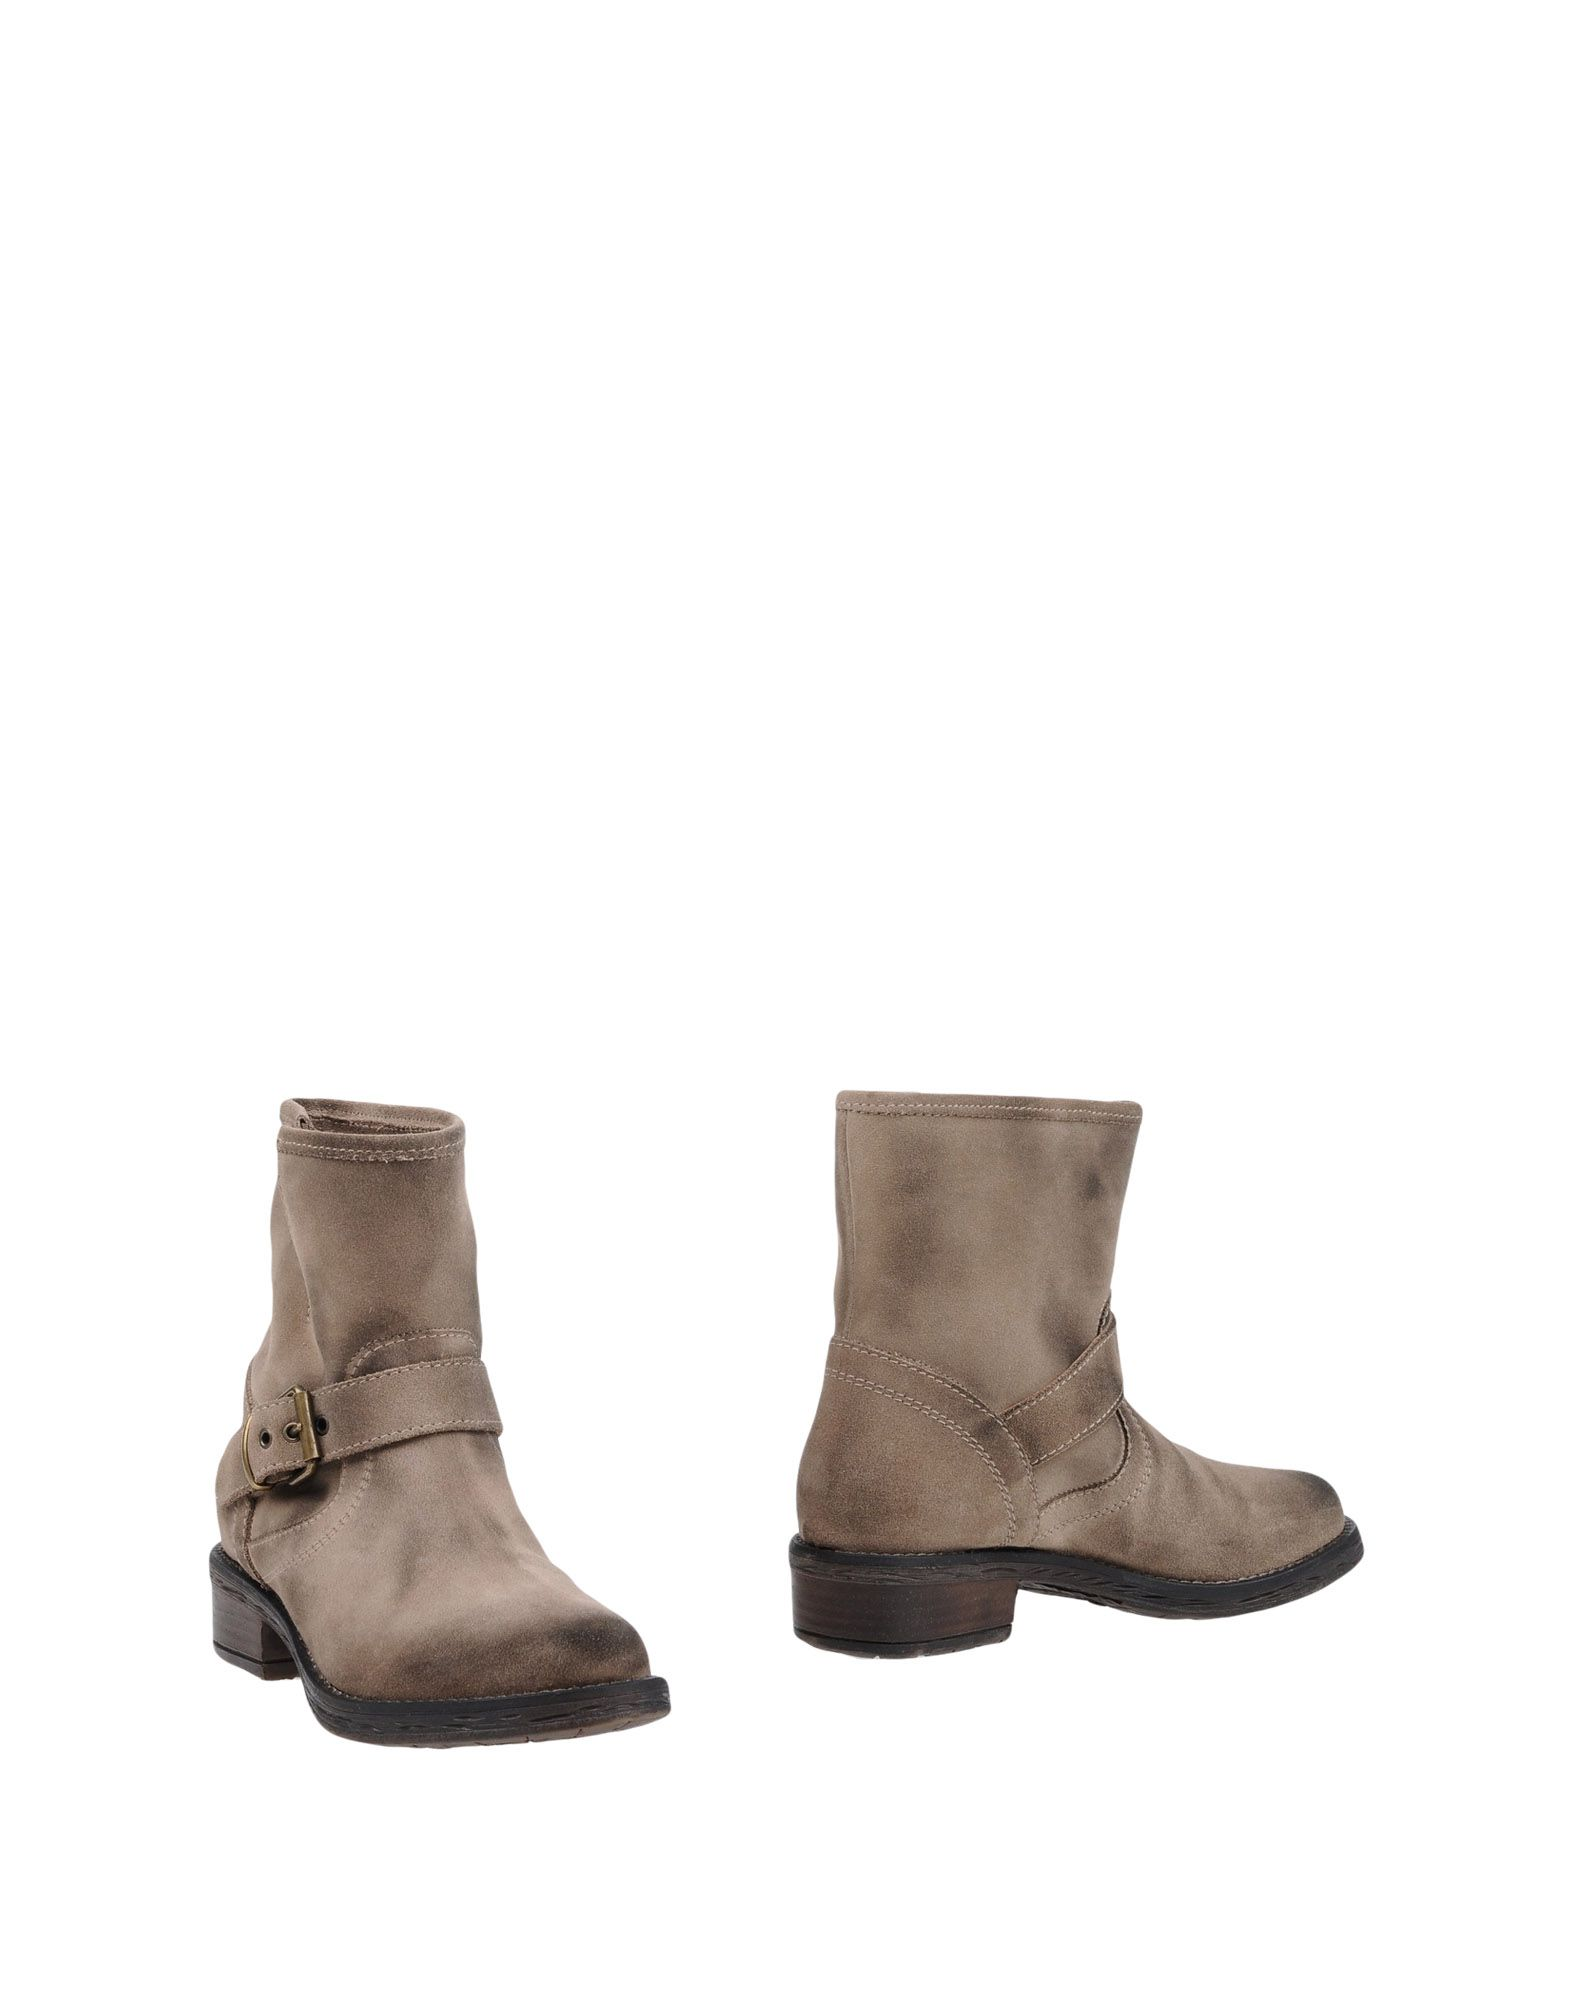 Bottine San Crispino Femme - Bottines San Crispino sur